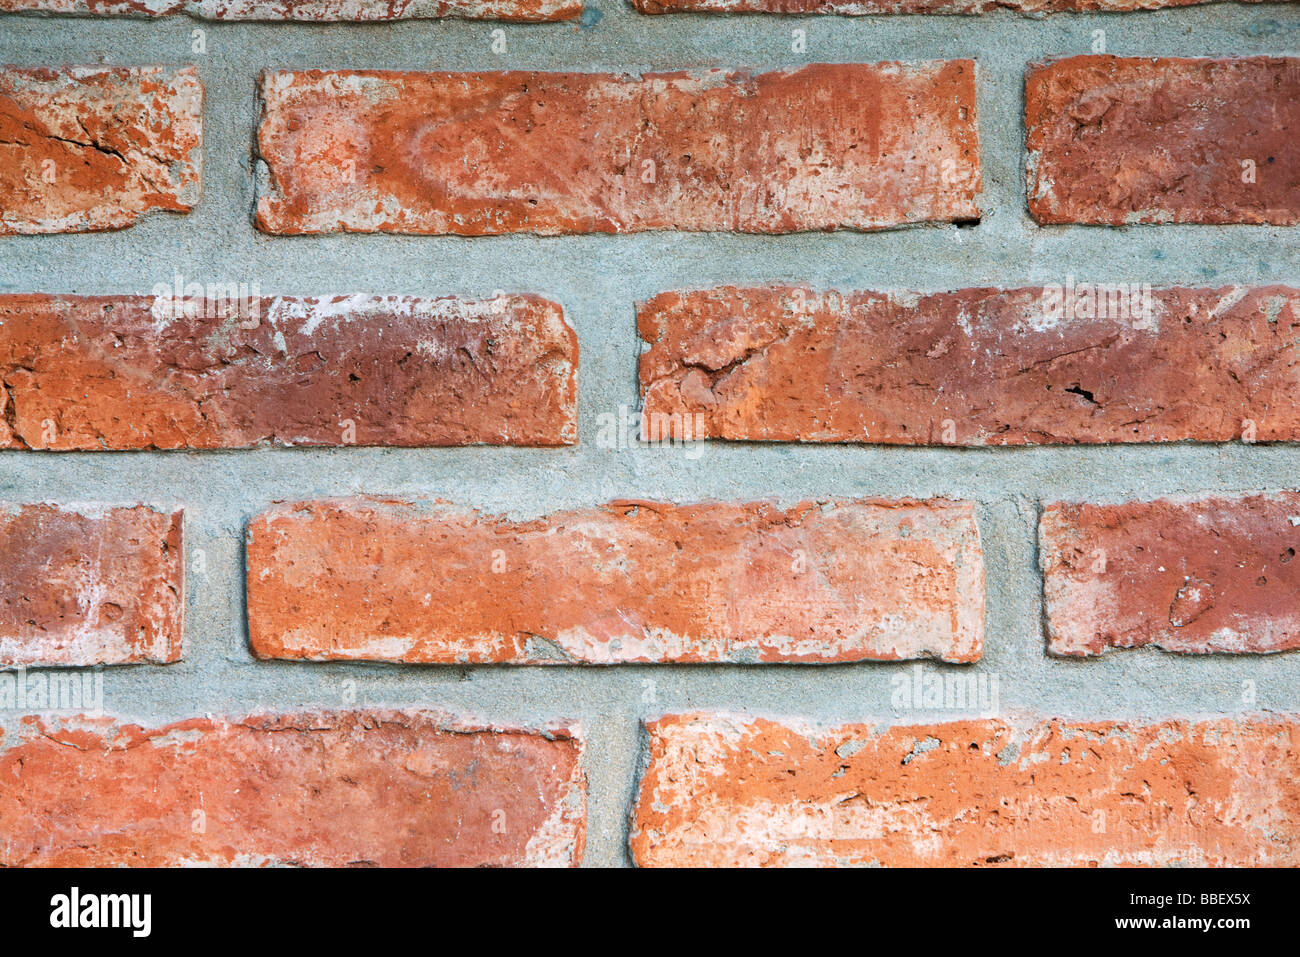 Ziegelmauer, close-up Stockbild